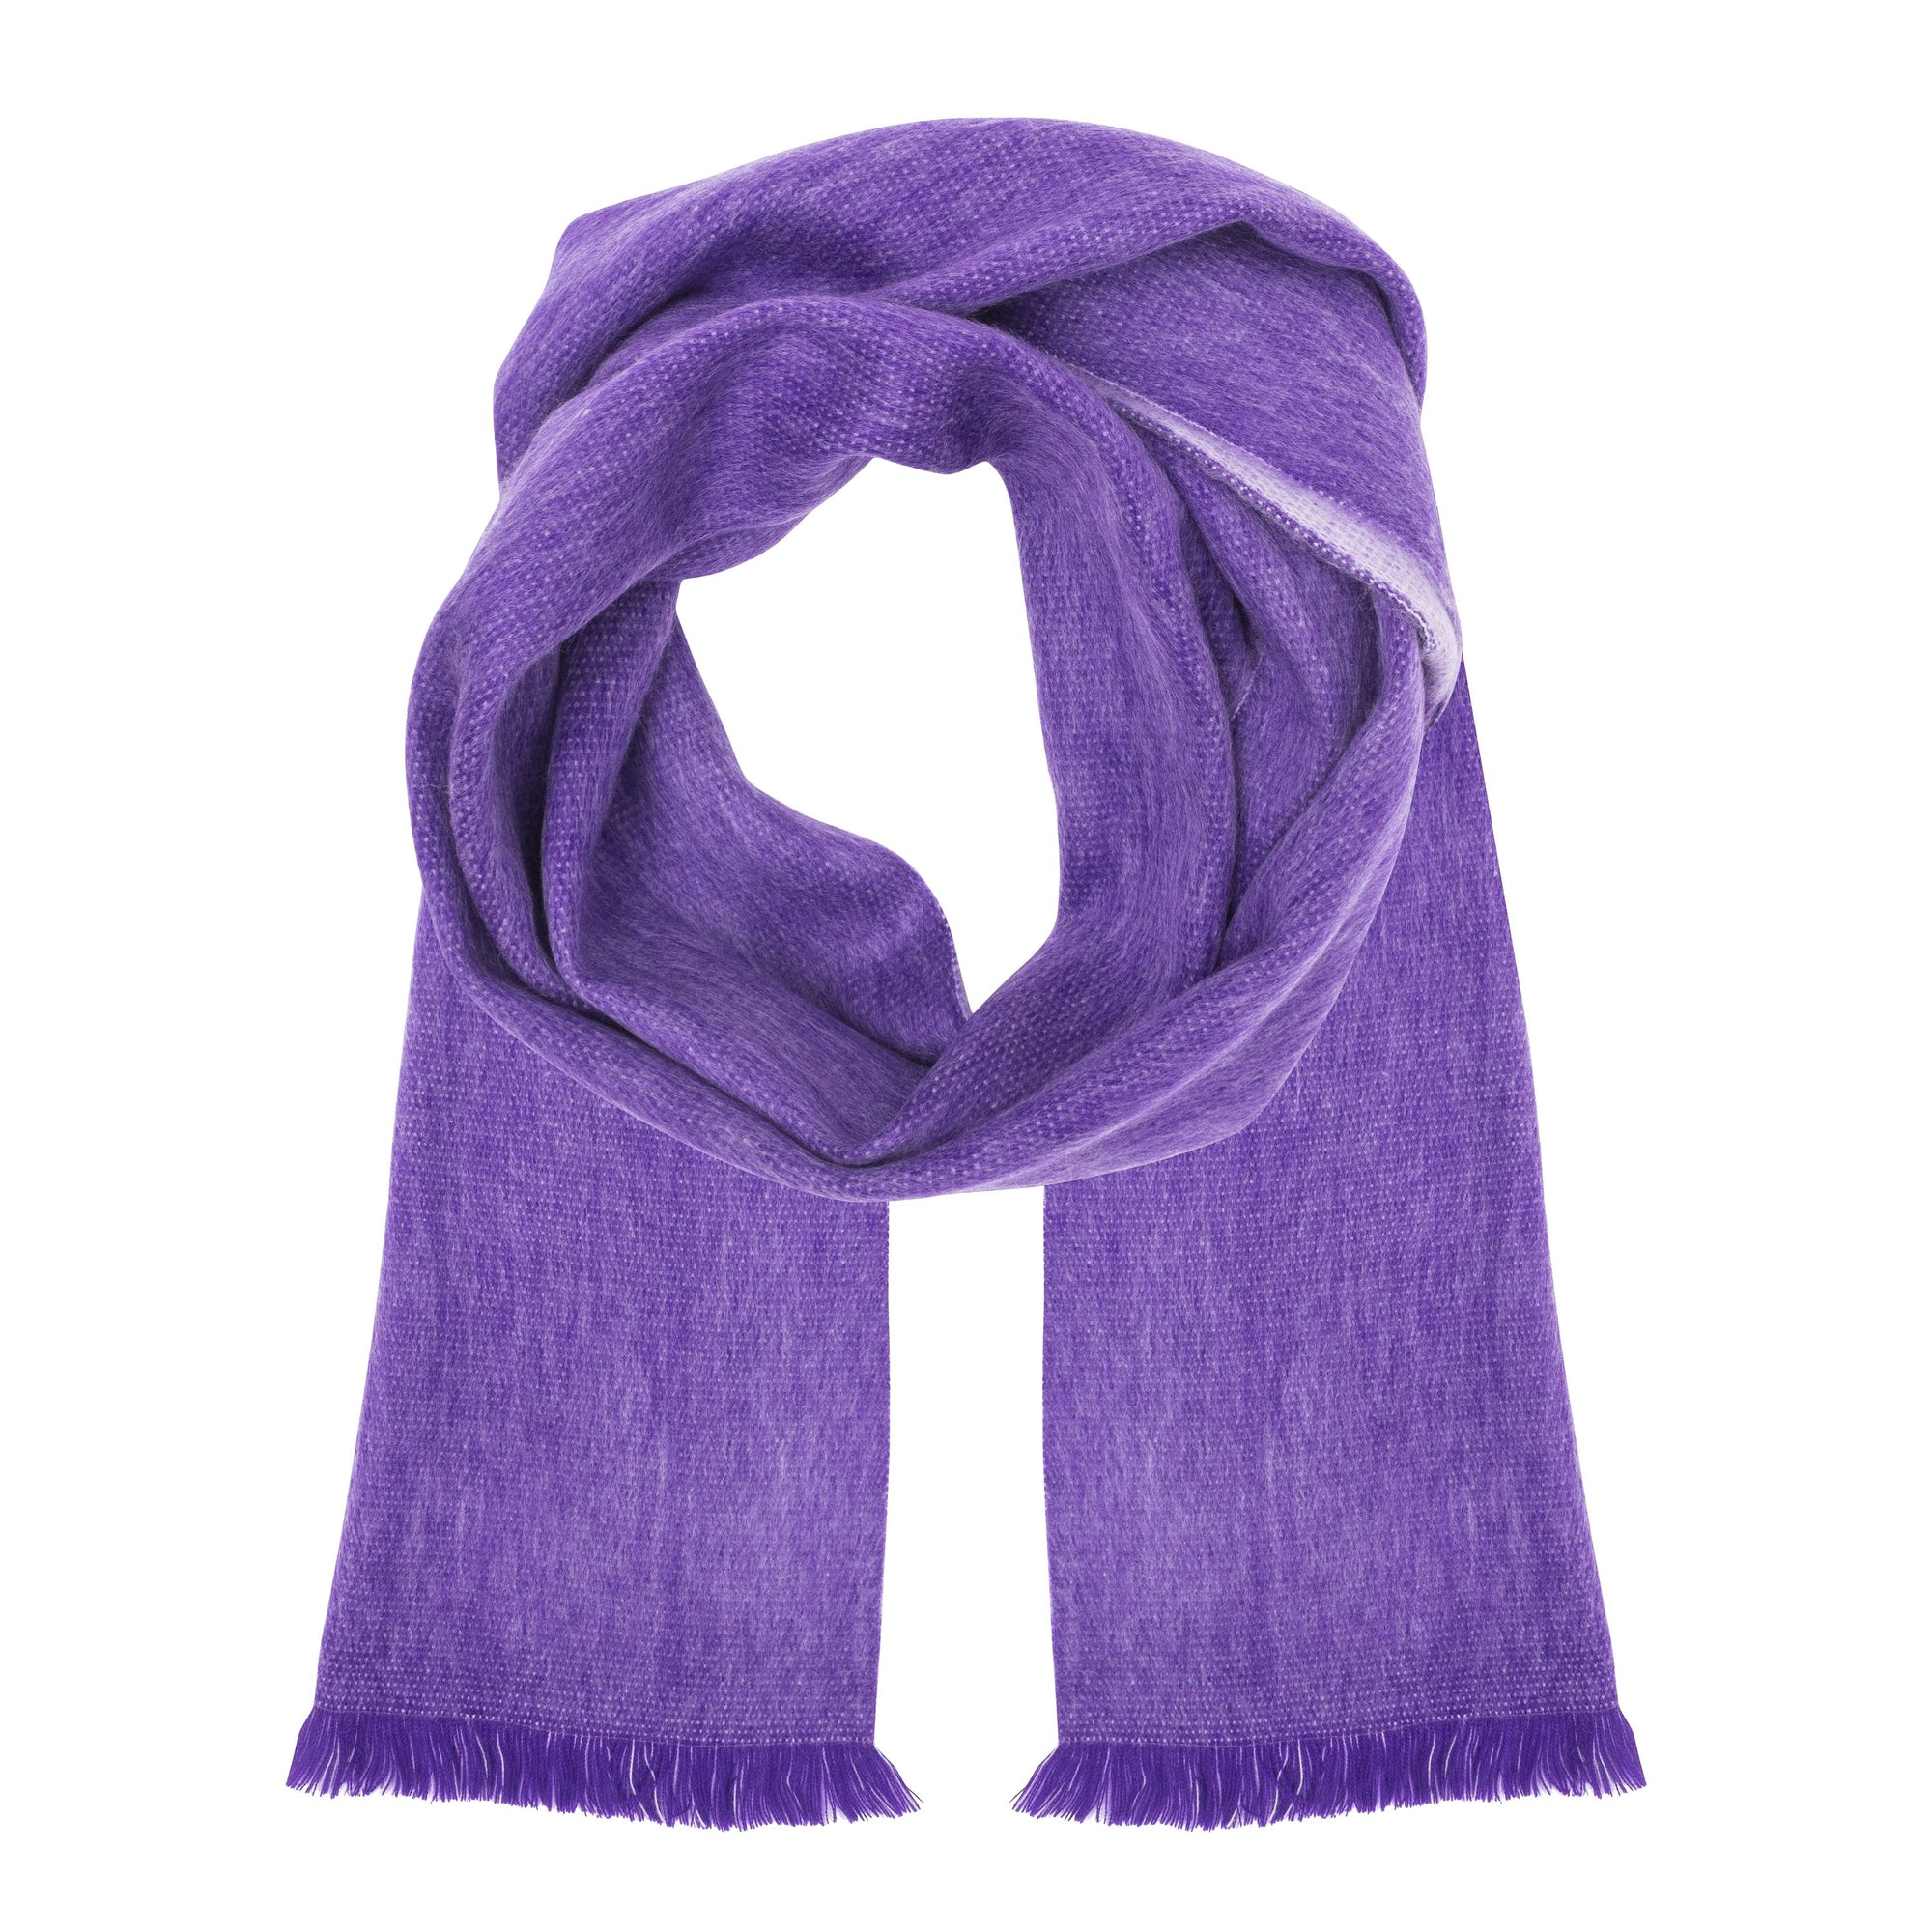 Alpaca Light Purple / Tan Double Weave Scarf